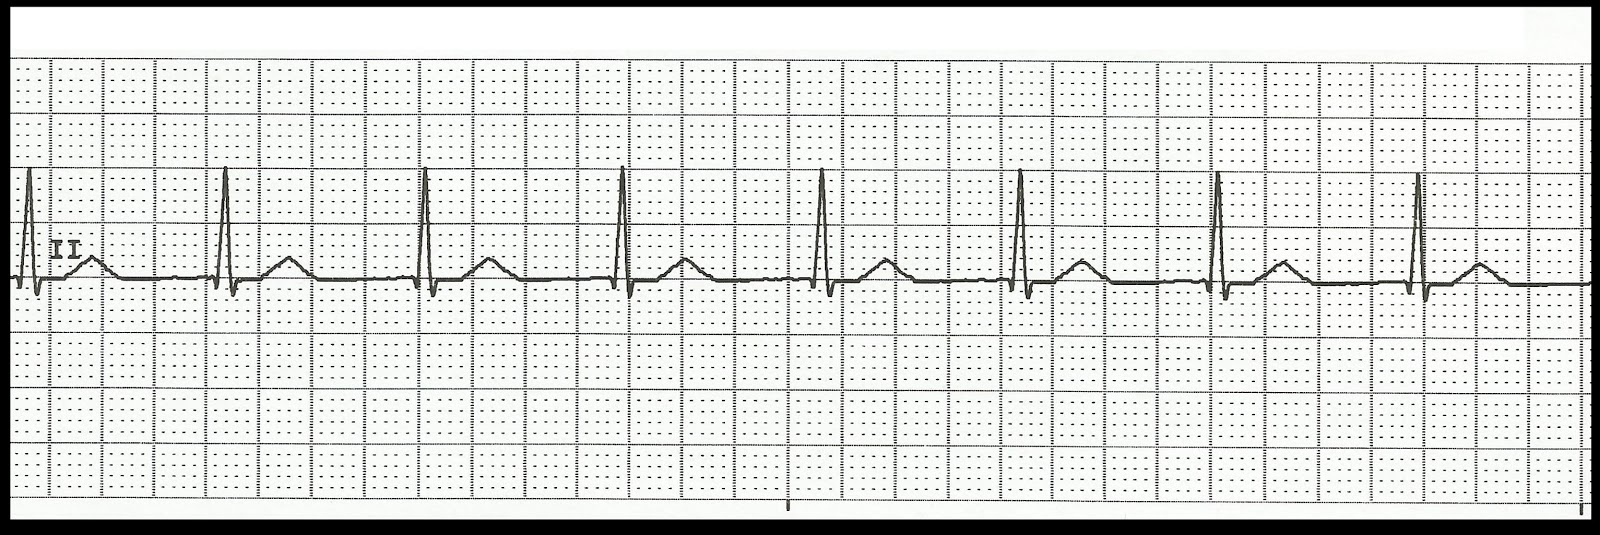 Accelerated junctional rhythm jpgAccelerated Junctional Rhythm